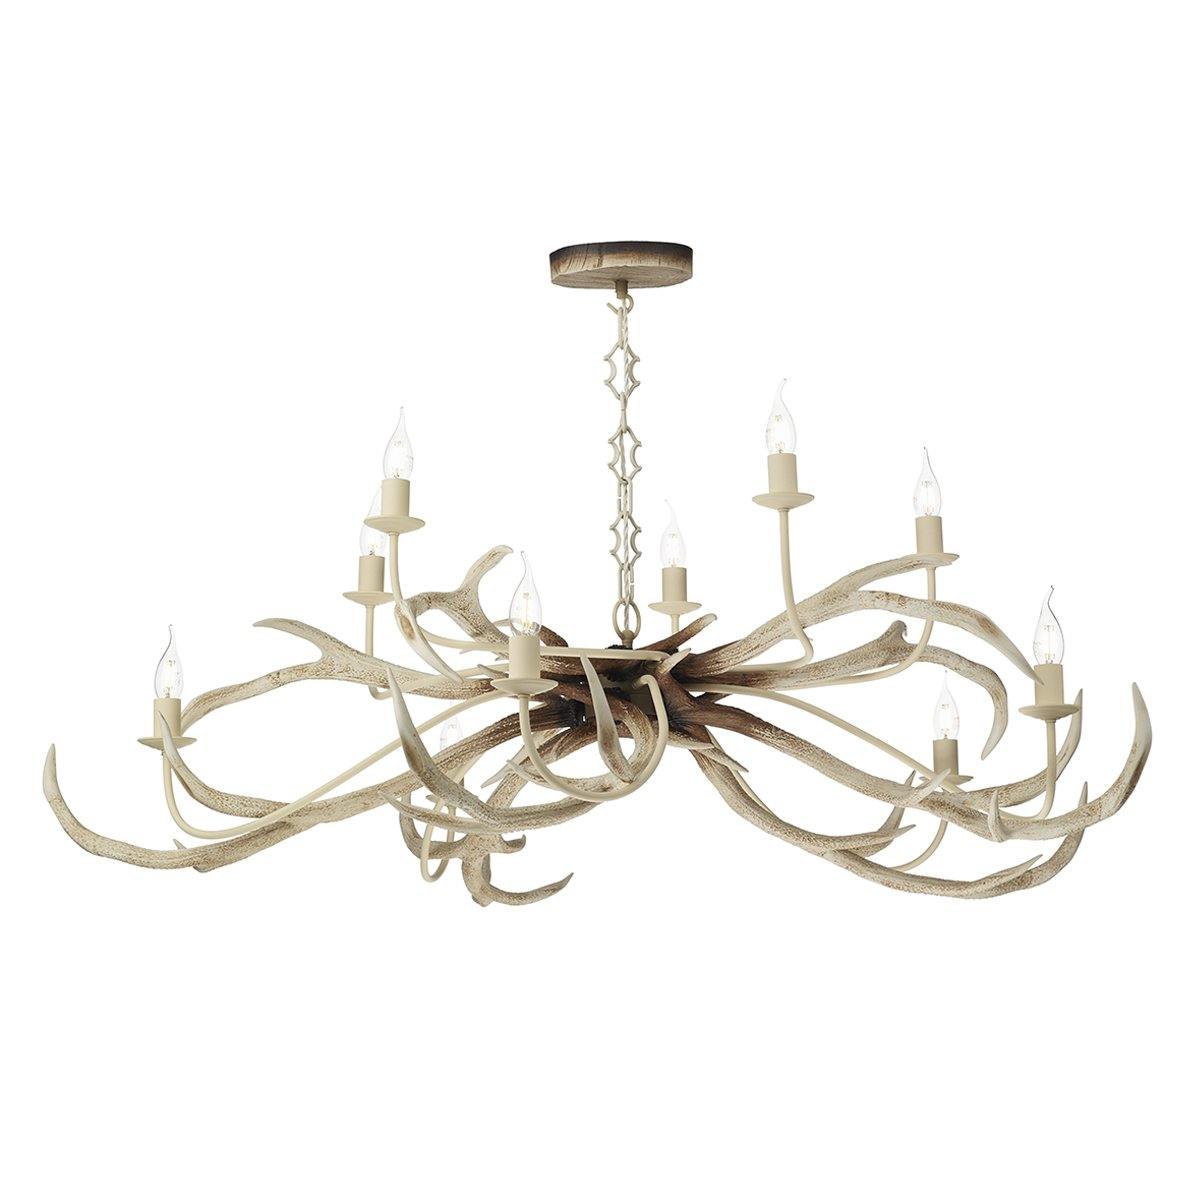 David Hunt Lighting STA2315 Stag 10 Light Pendant Bleached Hand Painted Finish